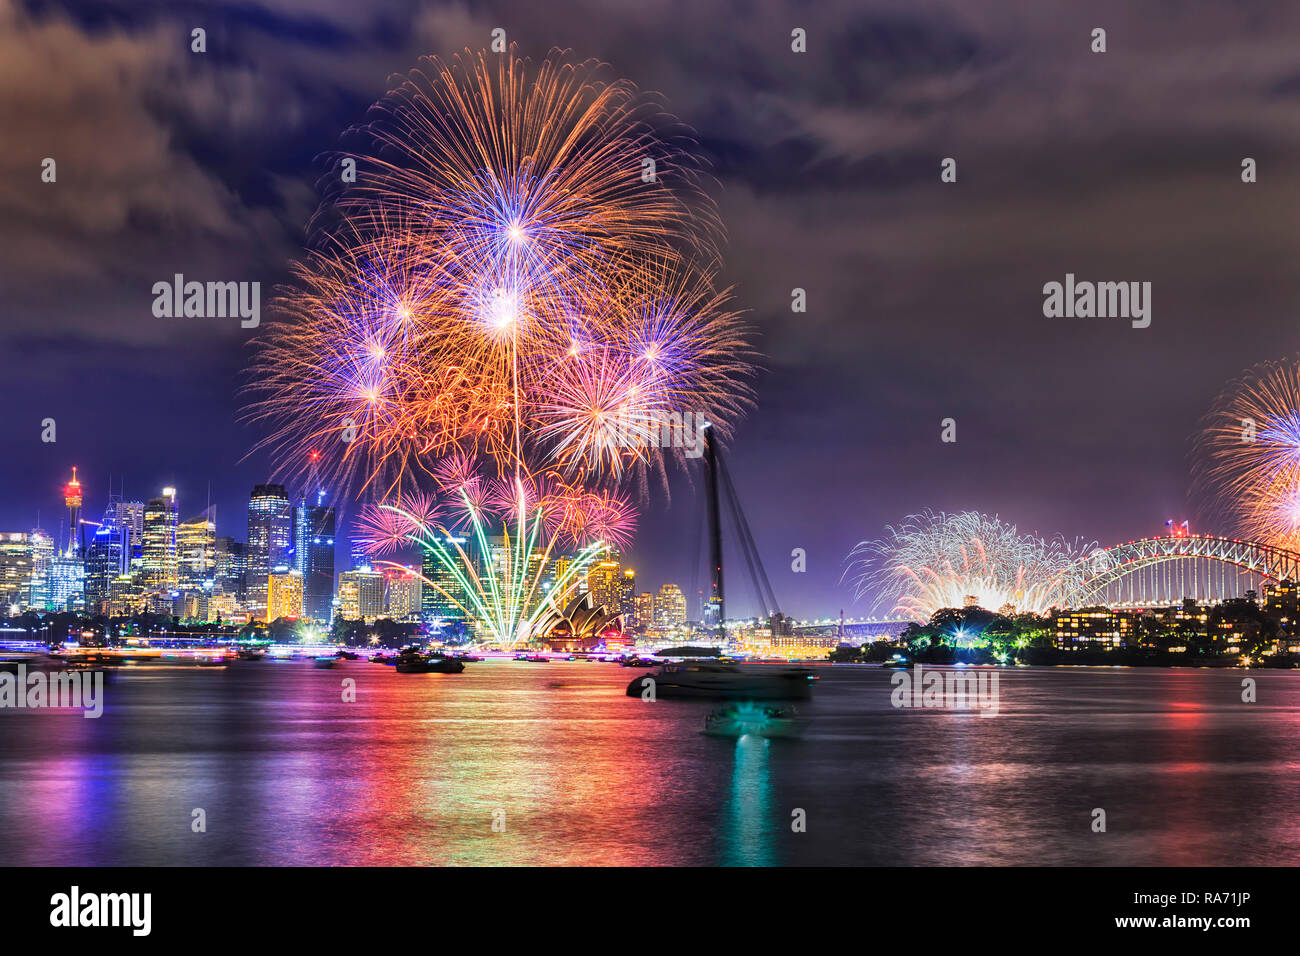 New Year eve fireworks in Sydney city over still waters of Sydney harbour reflecting bright flashing light balls. - Stock Image